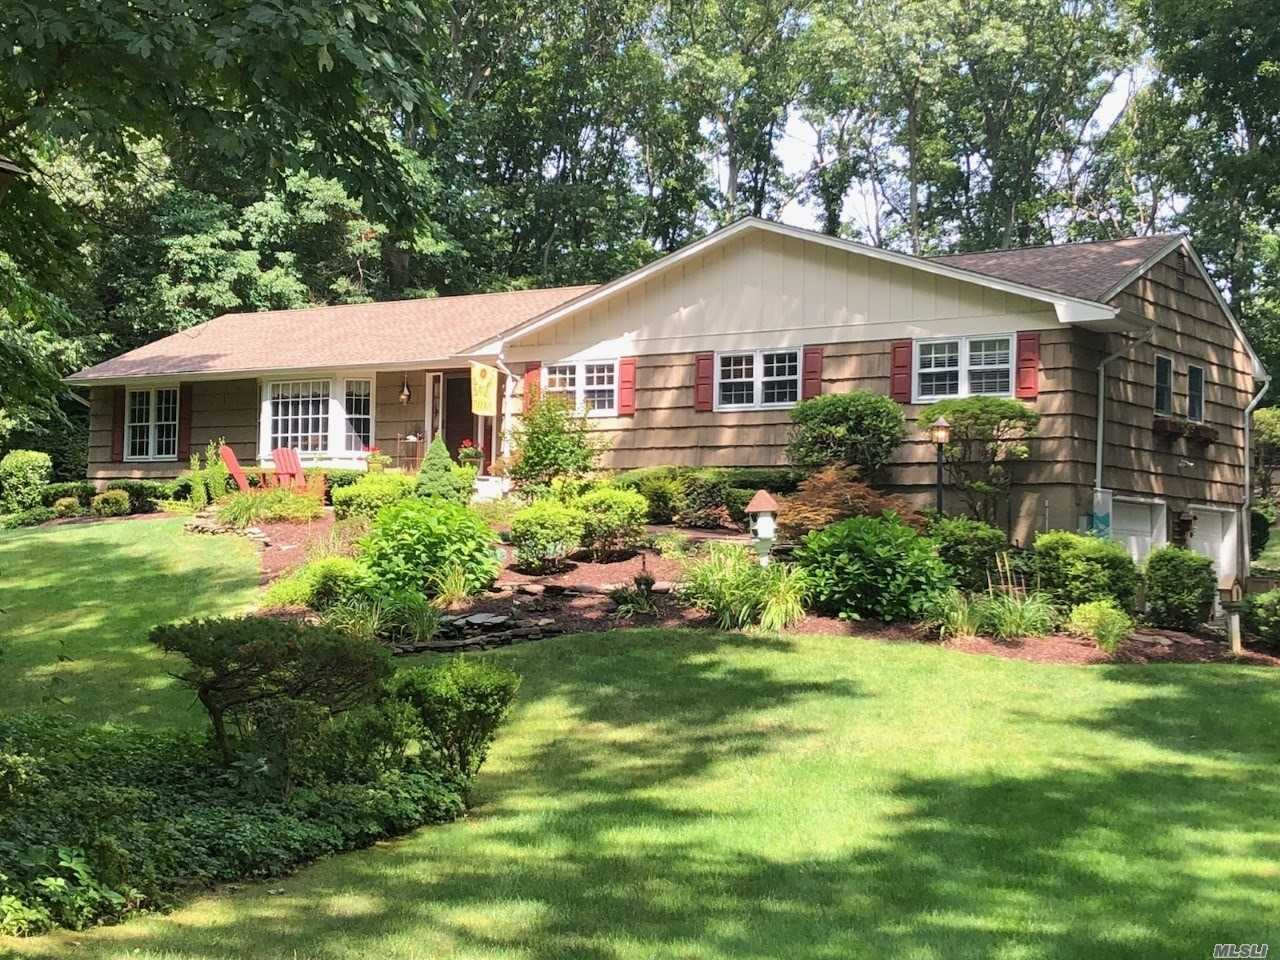 Beautiful 4 Bdrm, 2.5 Bath Ranch on private acre in Desirable Northport. Entry Hall, Formal LR, DR, EIK with Granite Countertops, SS Appliances, Den w/Fireplace & Skylights, W/D on Main floor, Master BR w/En Suite & WIC. Sliders out to brick patio Wood Floors Throughout. IGP w/New Liner & Pump.